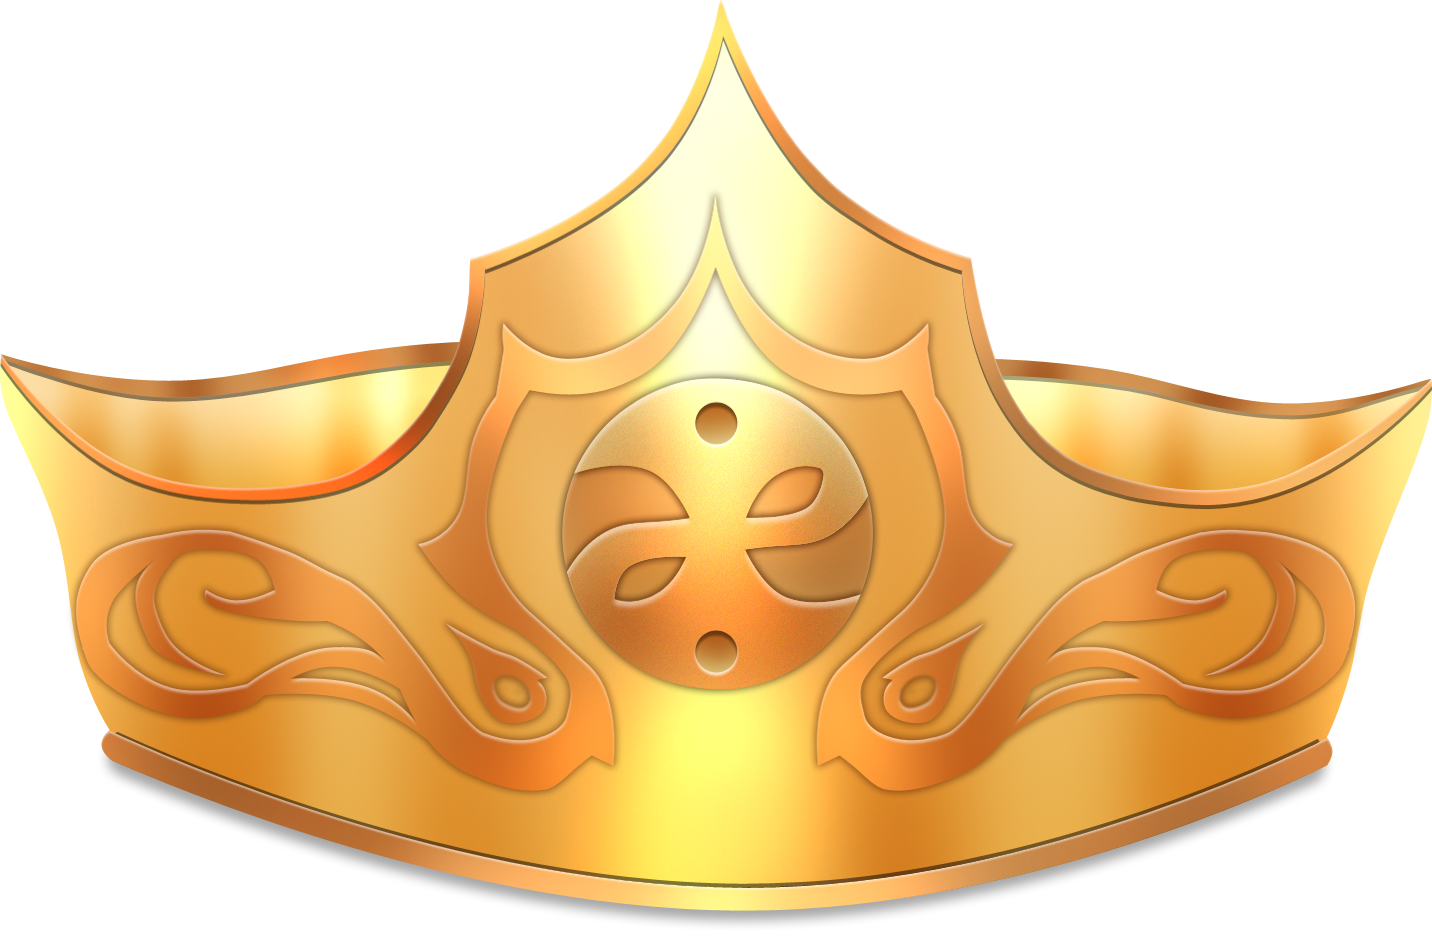 Png . Halo clipart crown